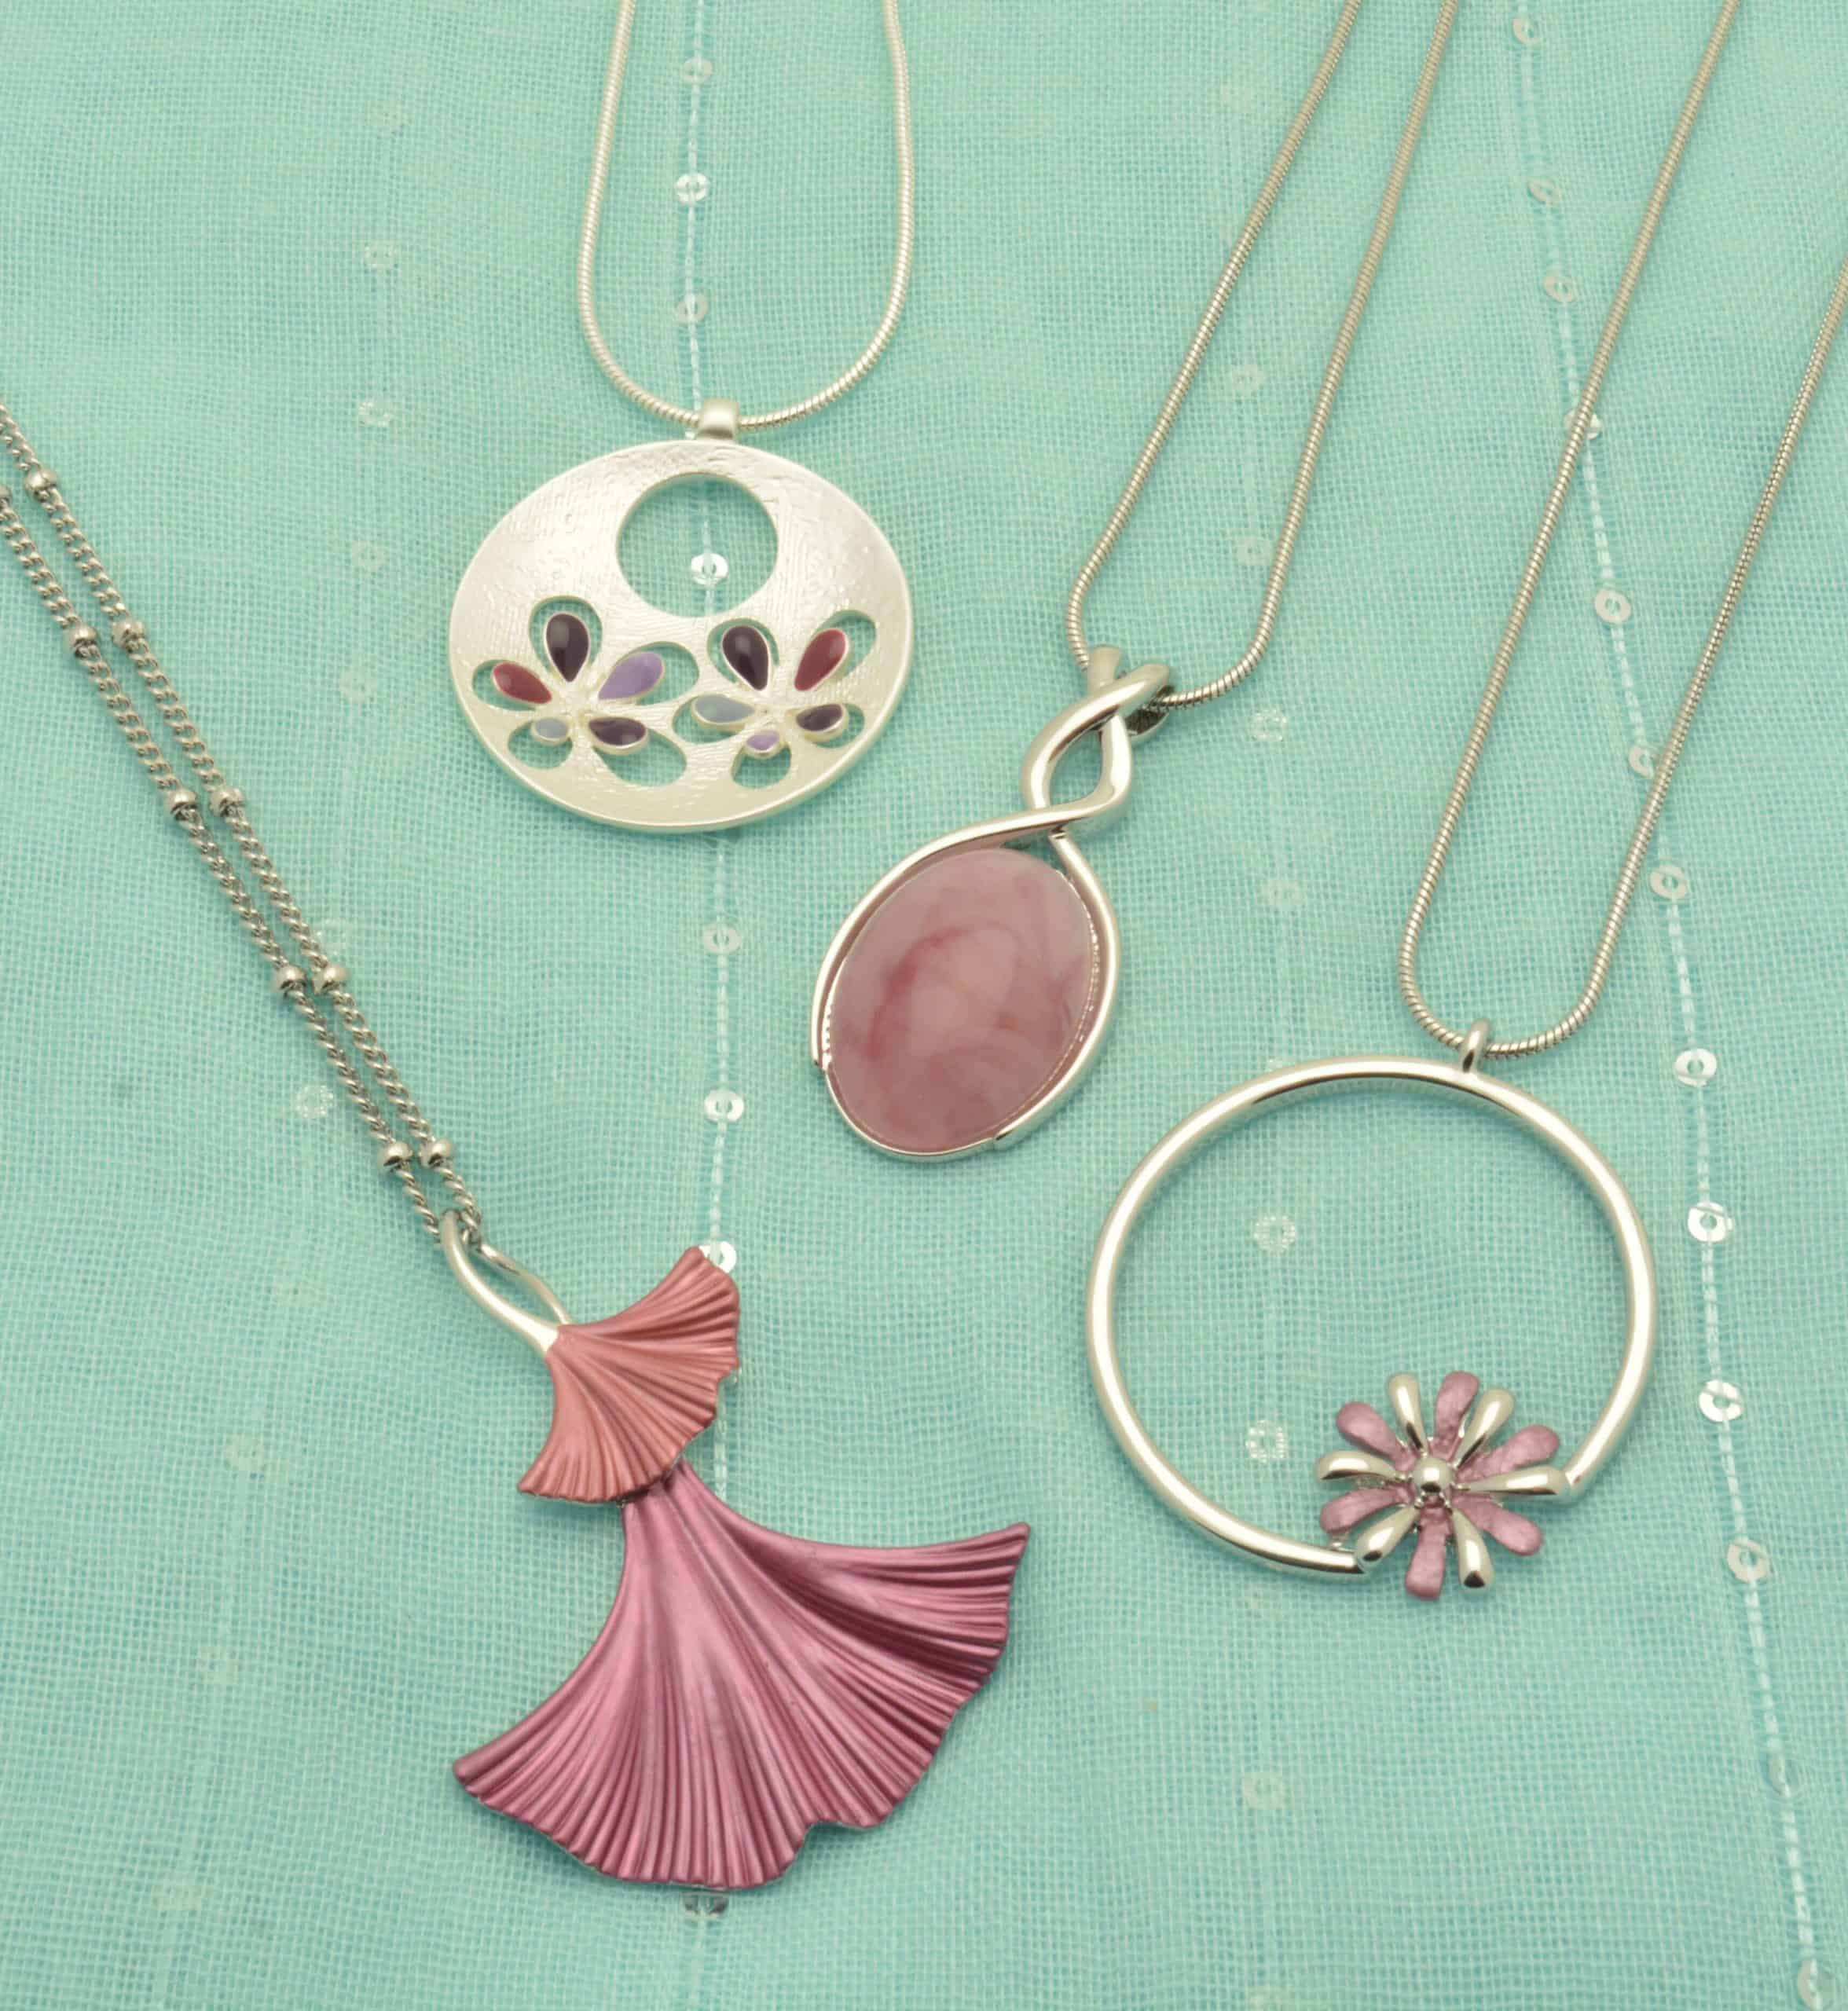 Miss Milly - Letterbox Loveliness jewellery